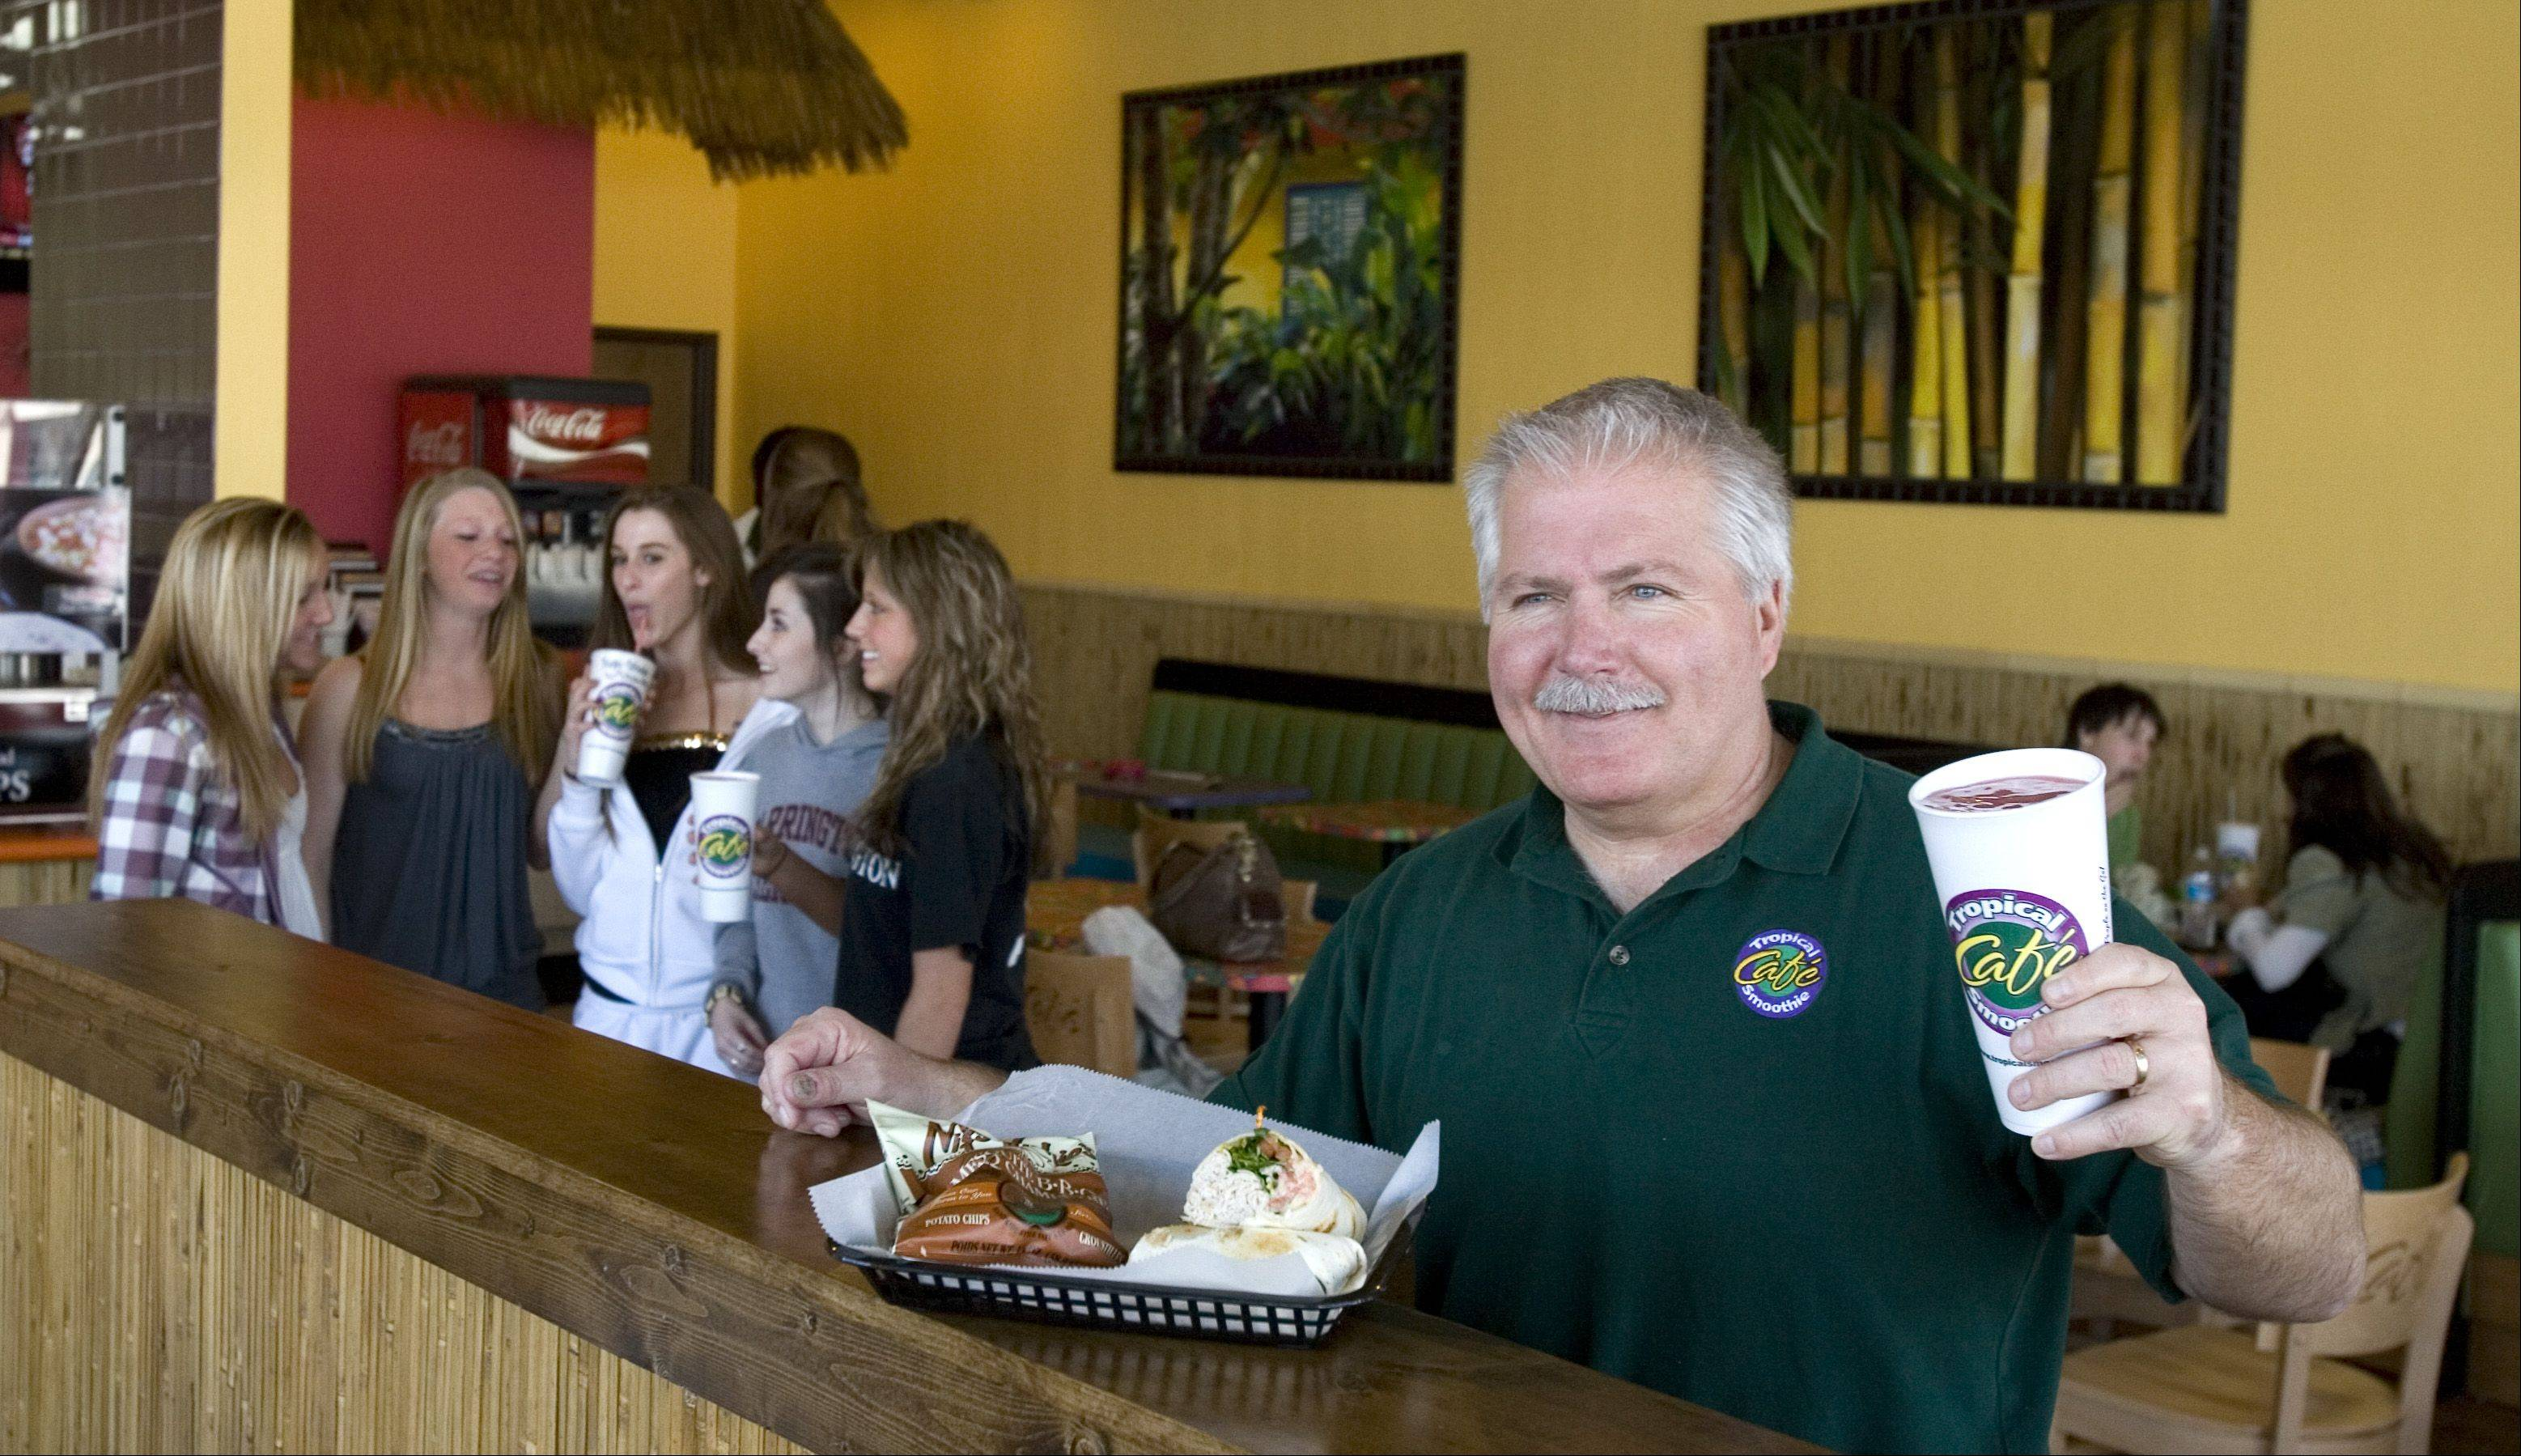 In this 2008 file photo, Brian Guinter serves sandwiches and smoothies at his Tropical Smoothie Cafe in Barrington. It closed last week and Meatheads will replace it.